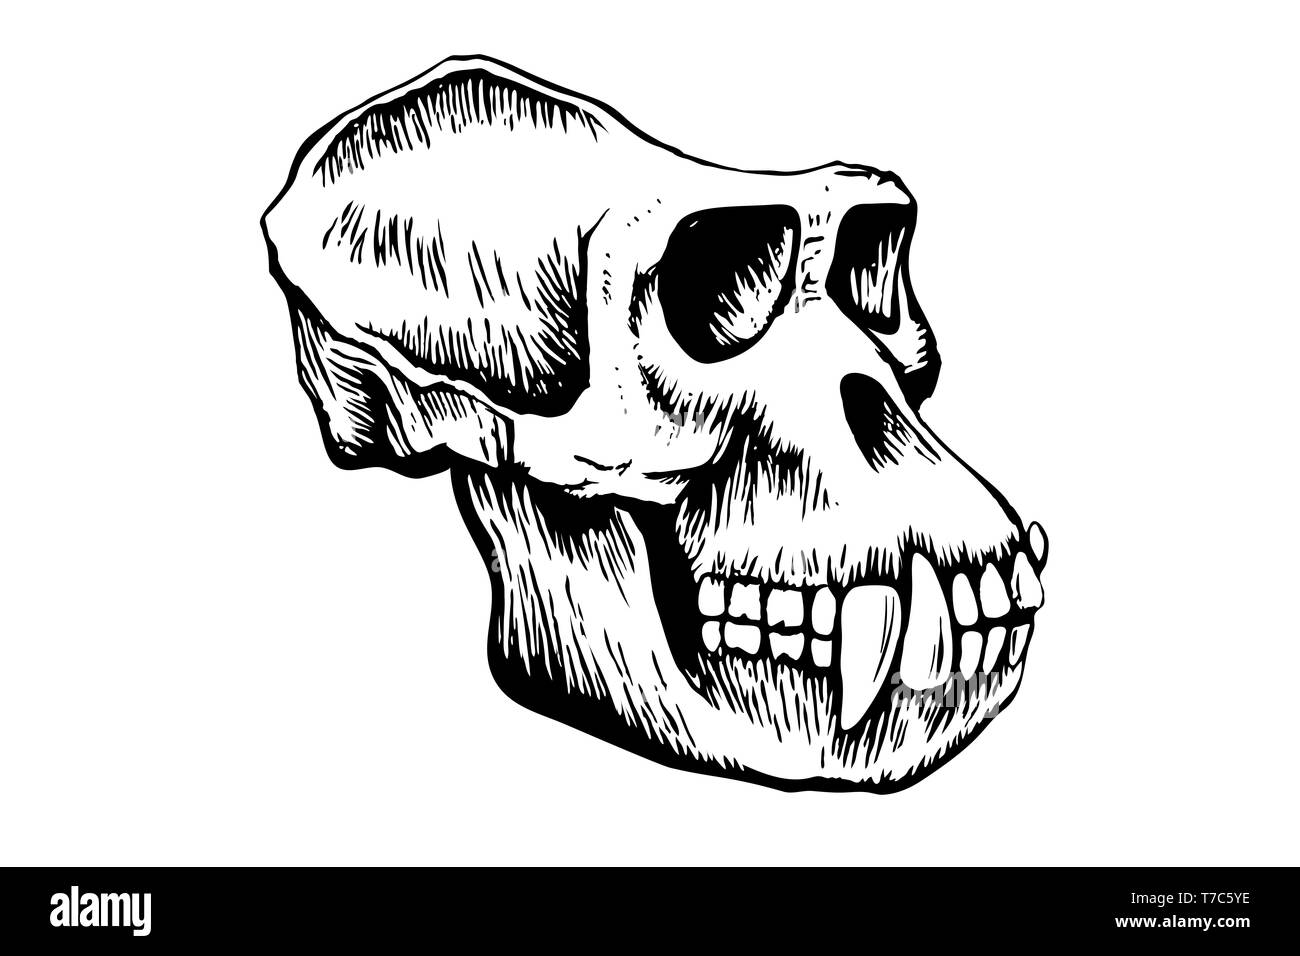 hight resolution of gorilla monkey skull hand drawn sketch isolated on white background illustration stock